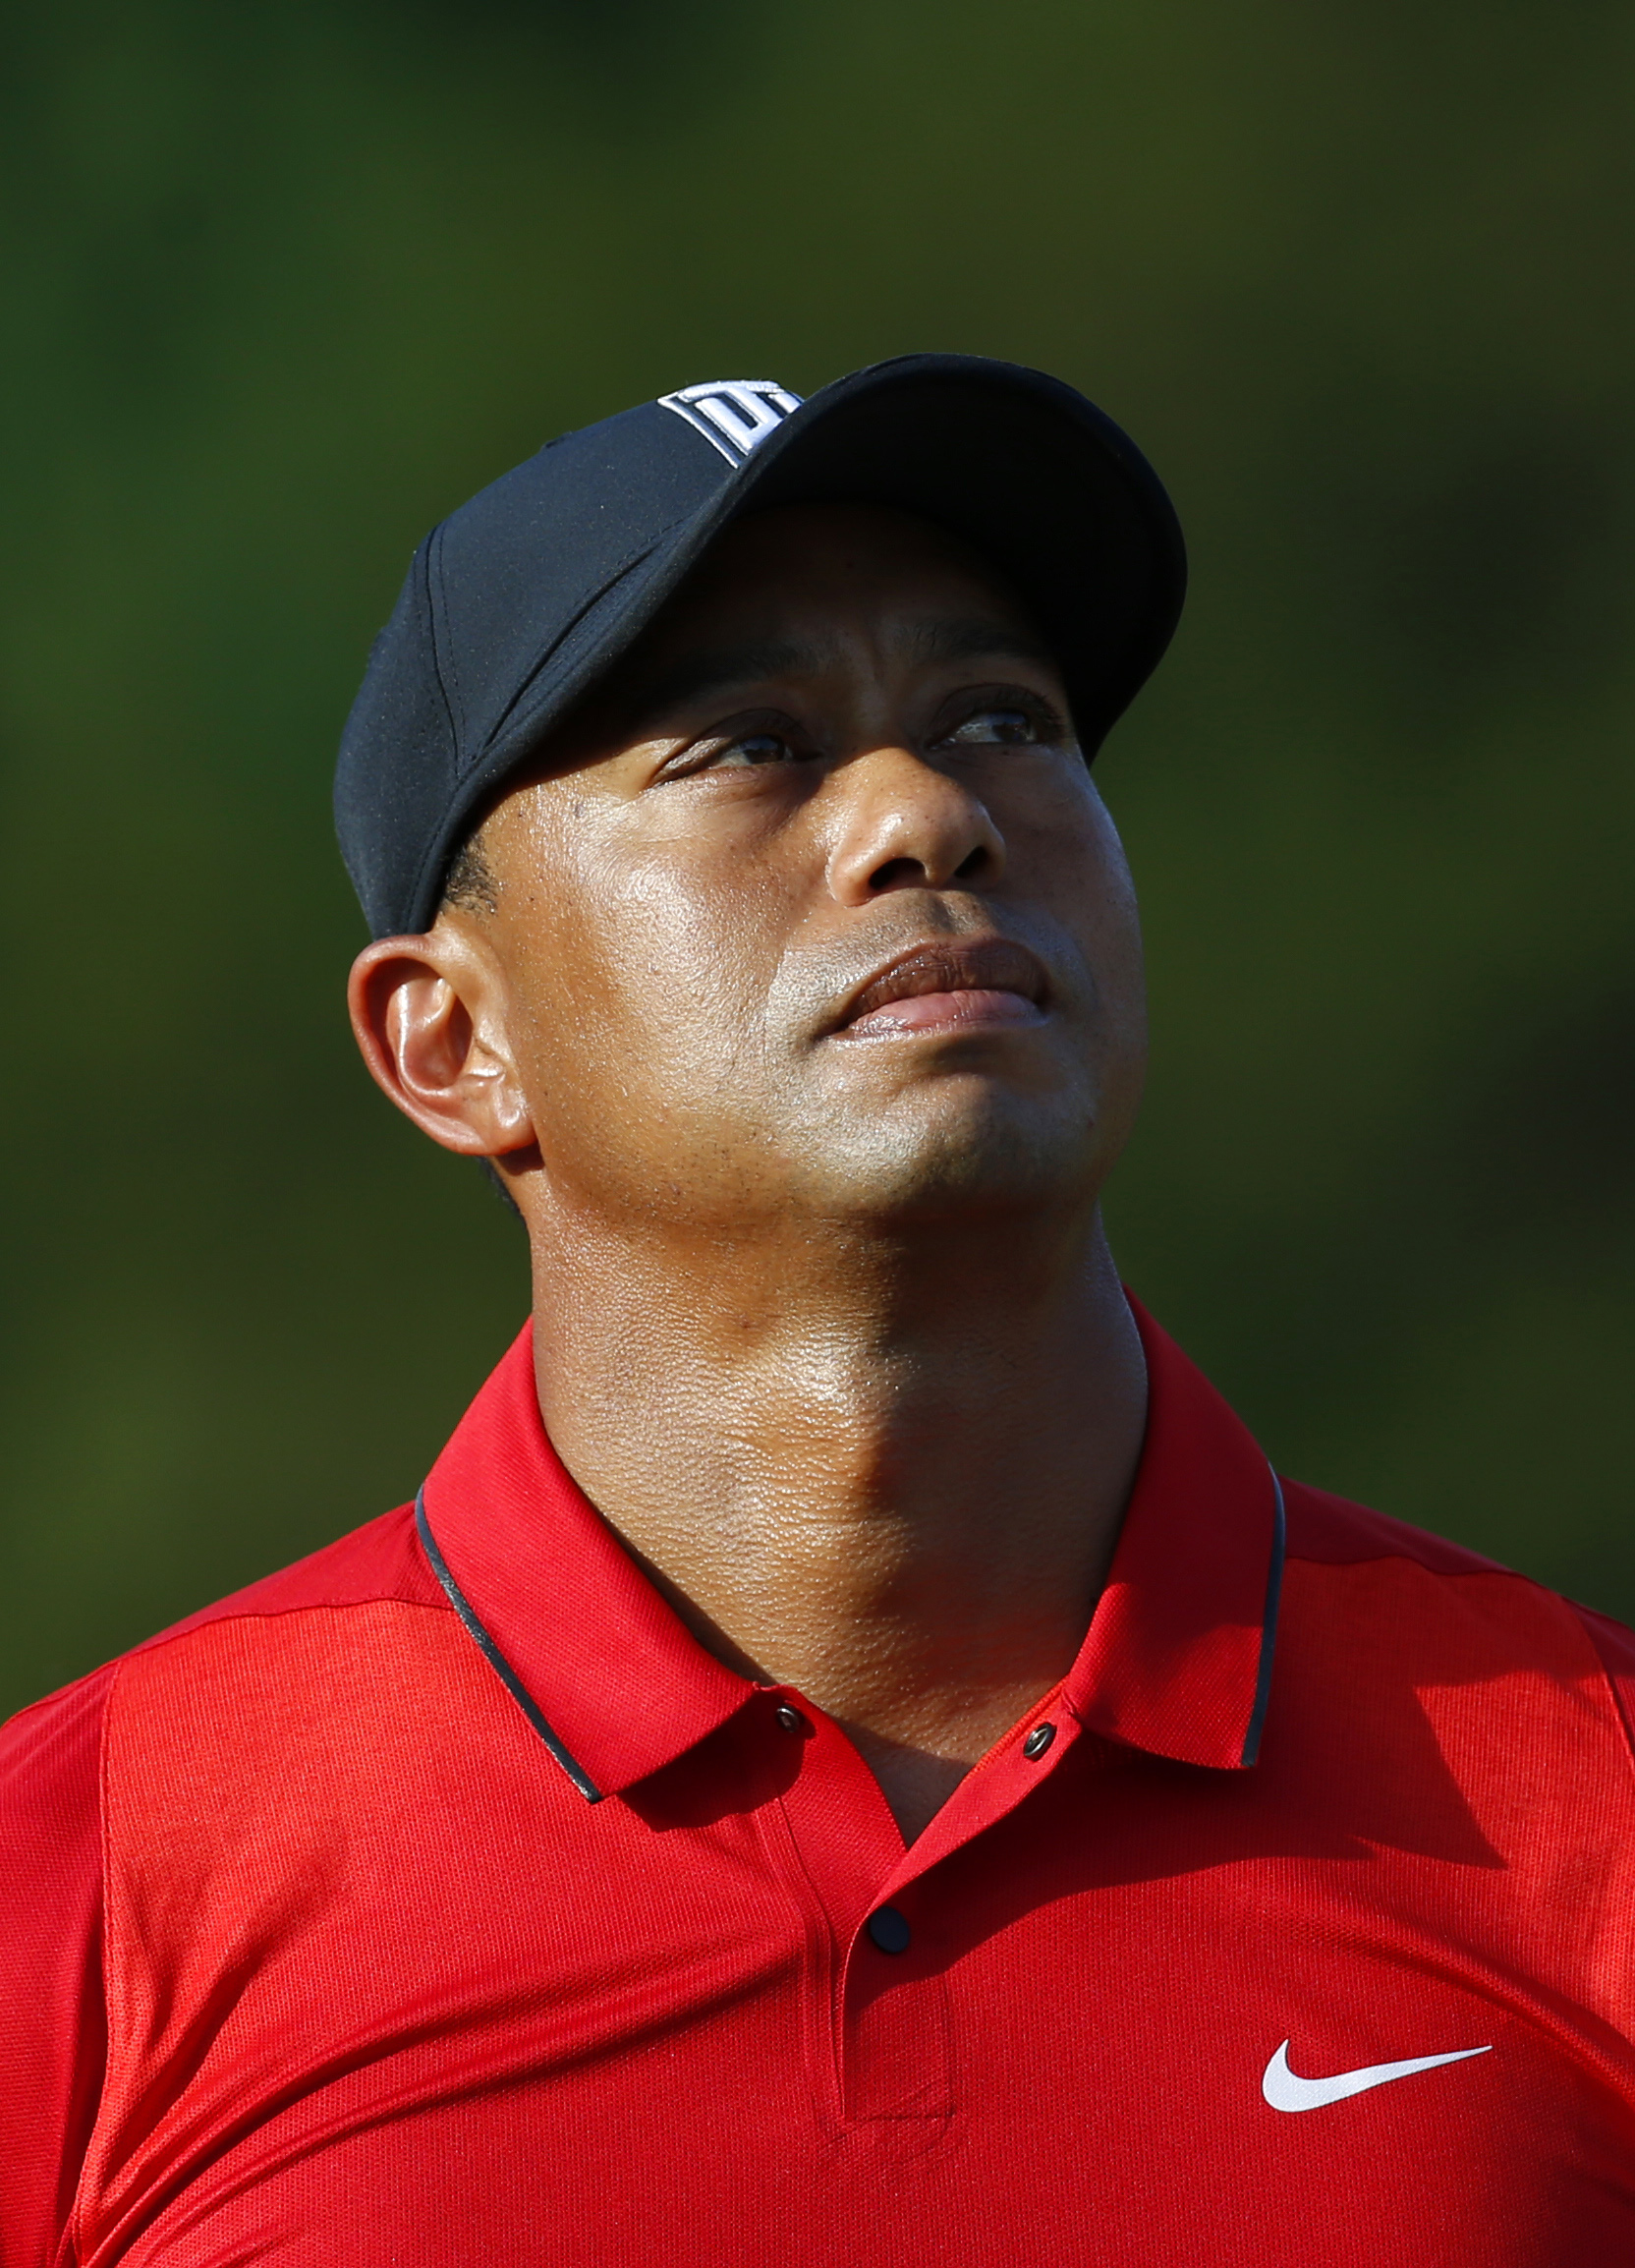 FILE - In this June 26, 2016, file photo, Tiger Woods stands on the 18th green during a trophy ceremony for Quicken Loans National PGA golf tournament winner Billy Hurley III in Bethesda, Md. Organizers say Friday, July 1, 2016, that Woods has withdrawn f